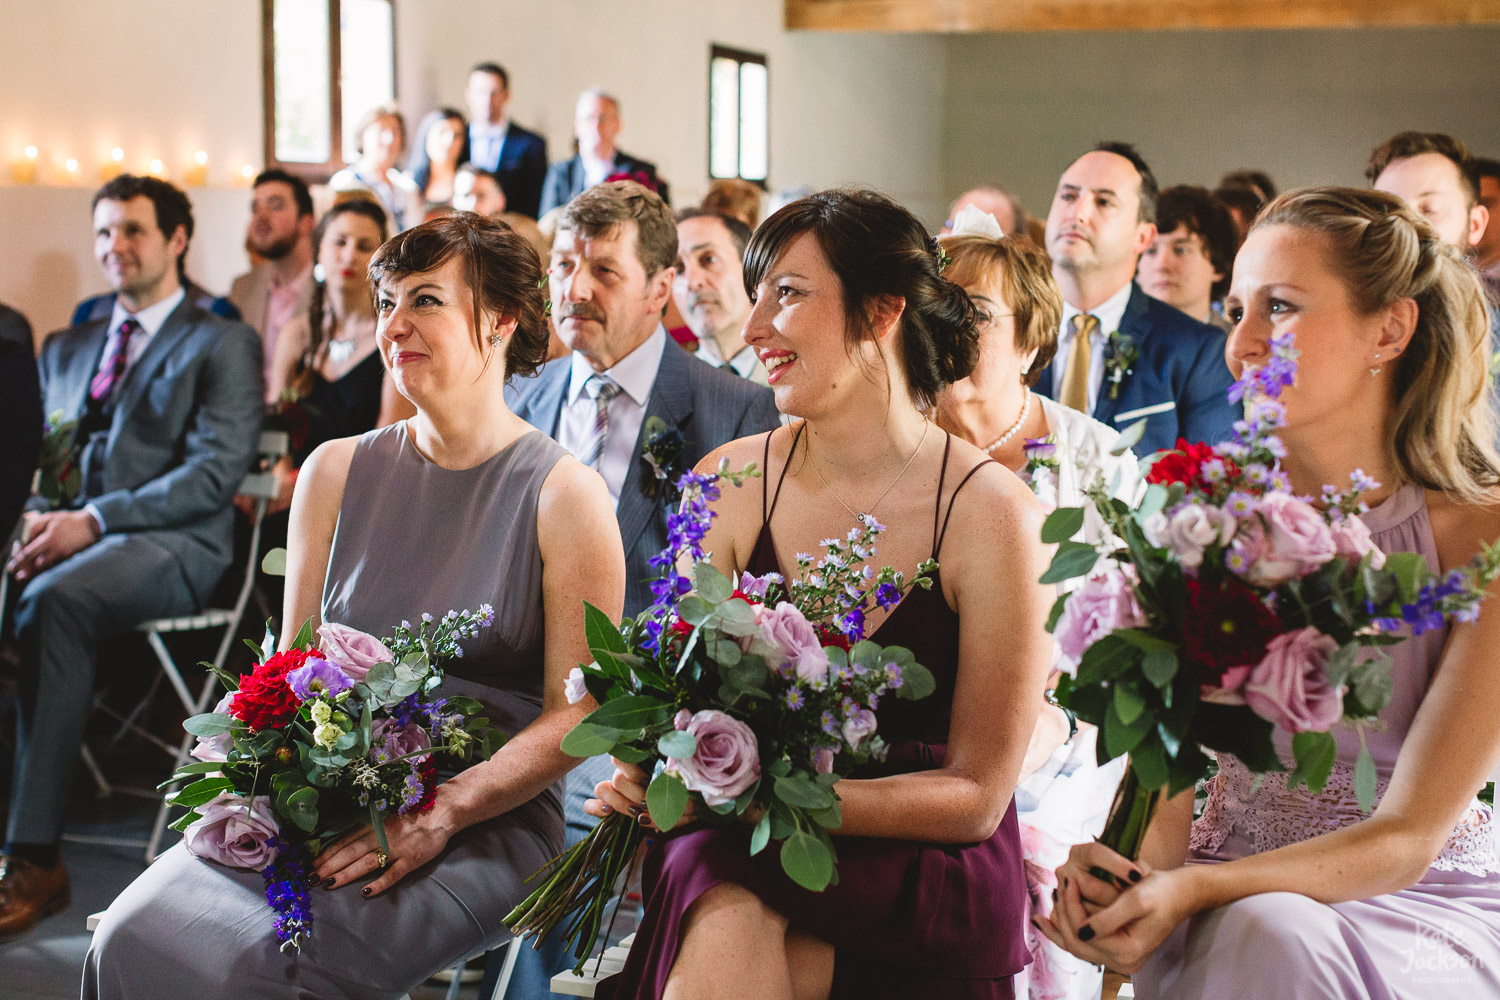 Natural photo of Bridesmaids in miss-matched purple dresses, sitting in ceremony with their bouquets in their hands smiling and tearing up during the wedding vows at Destination Wedding